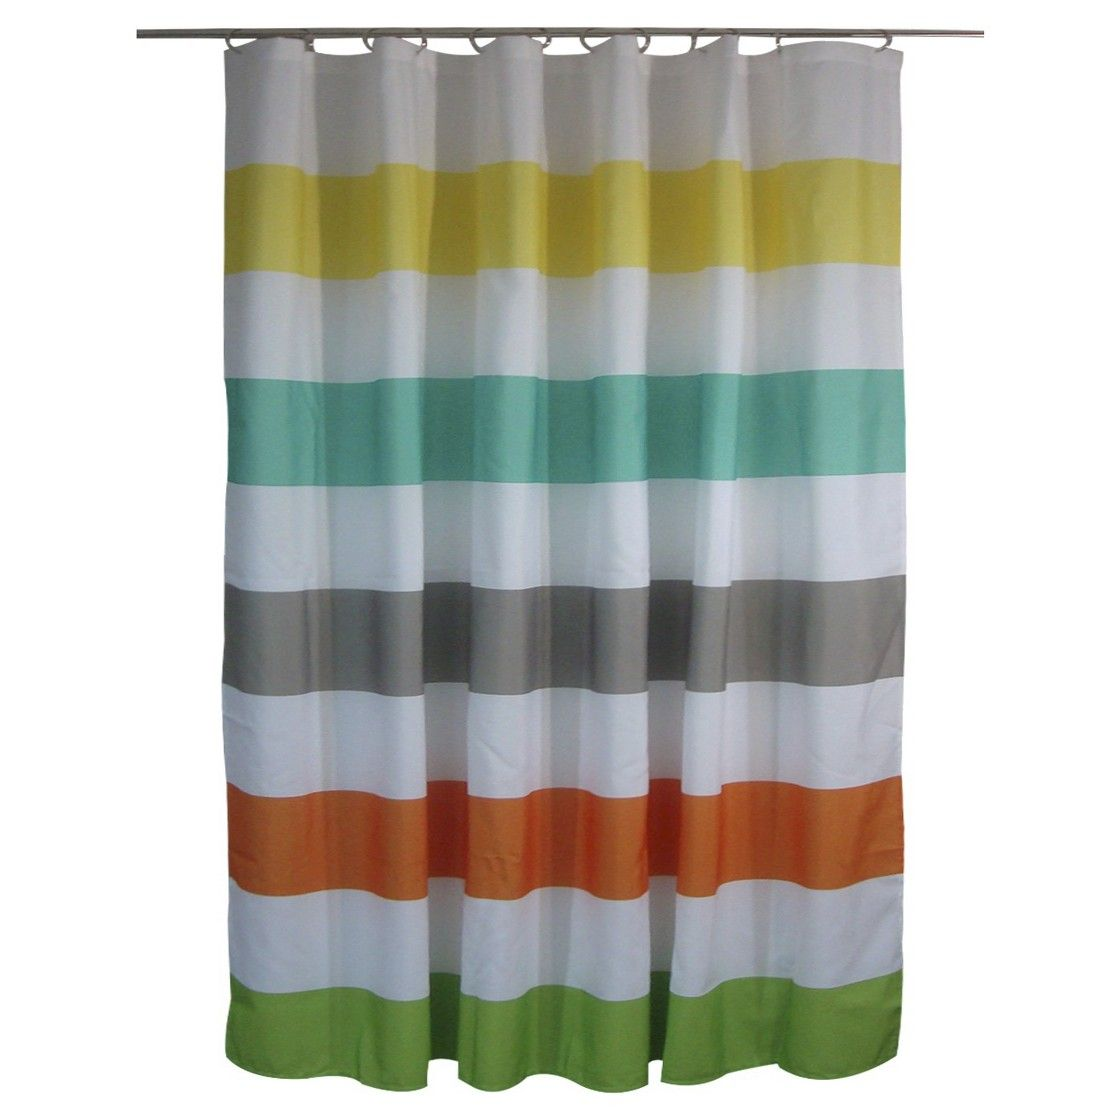 Shower Curtain Circo Rugby Stripes Warm Target Striped Shower